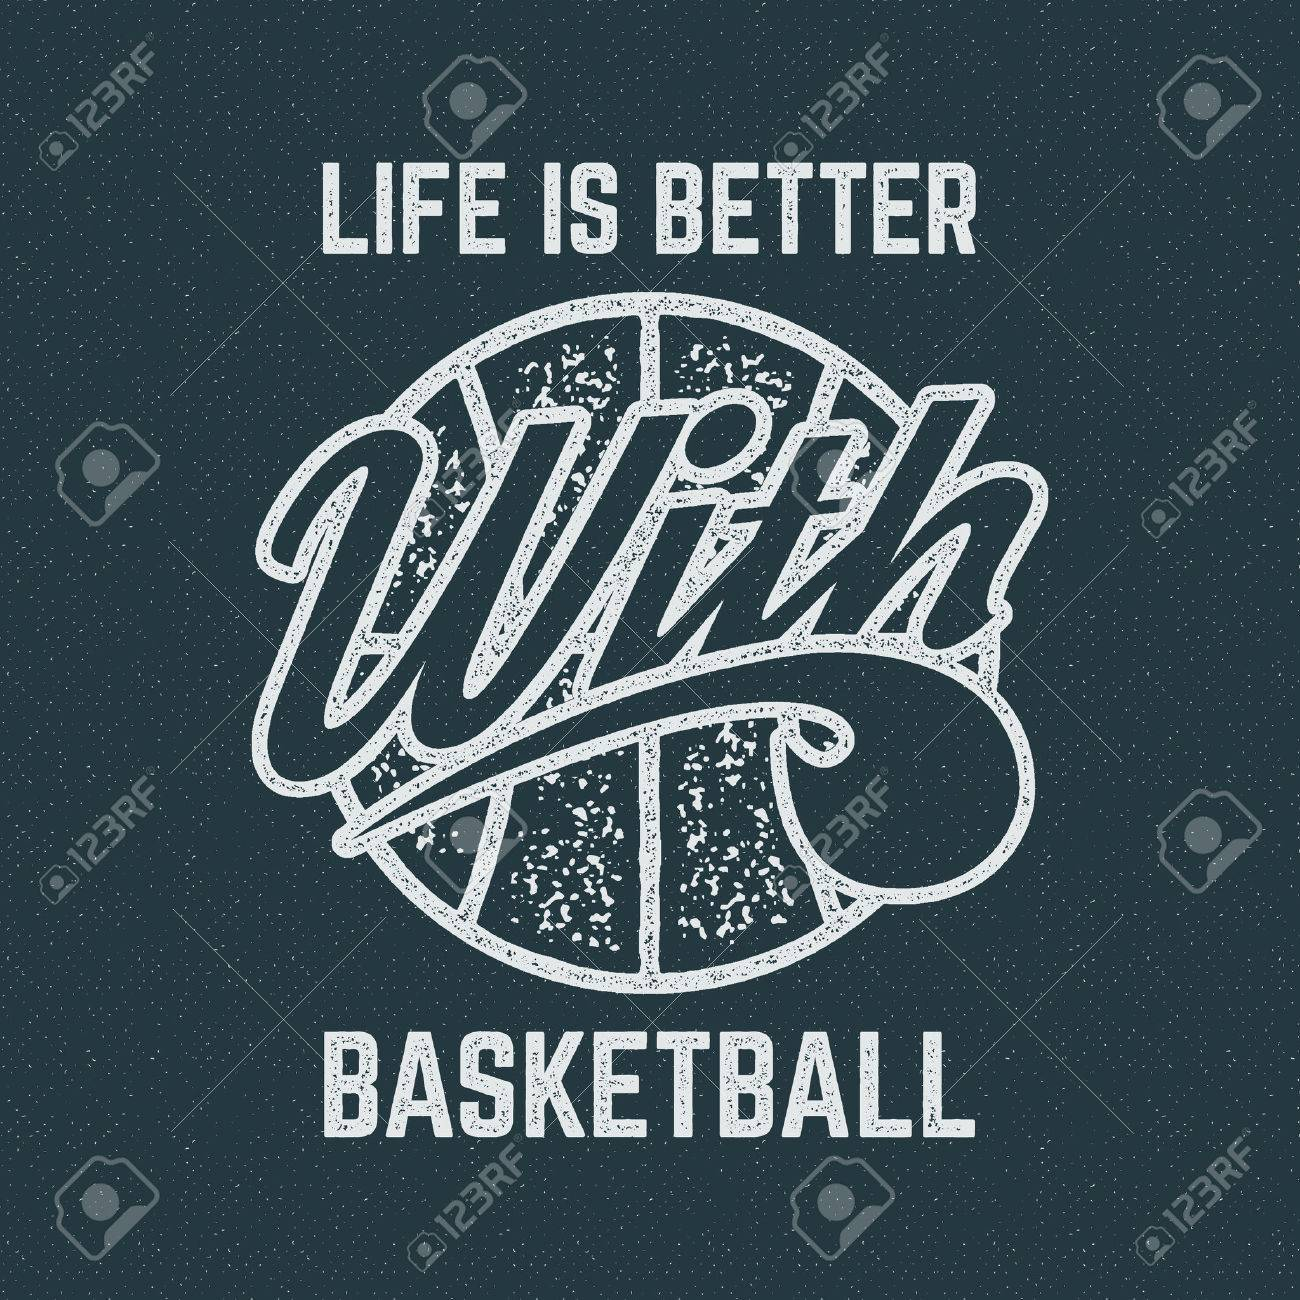 1d52bf85 Vector - Vintage Basketball sports tee design in retro rubber style with  symbols - ball and vector typography - life is better. Hipster patch for t  shirt, ...